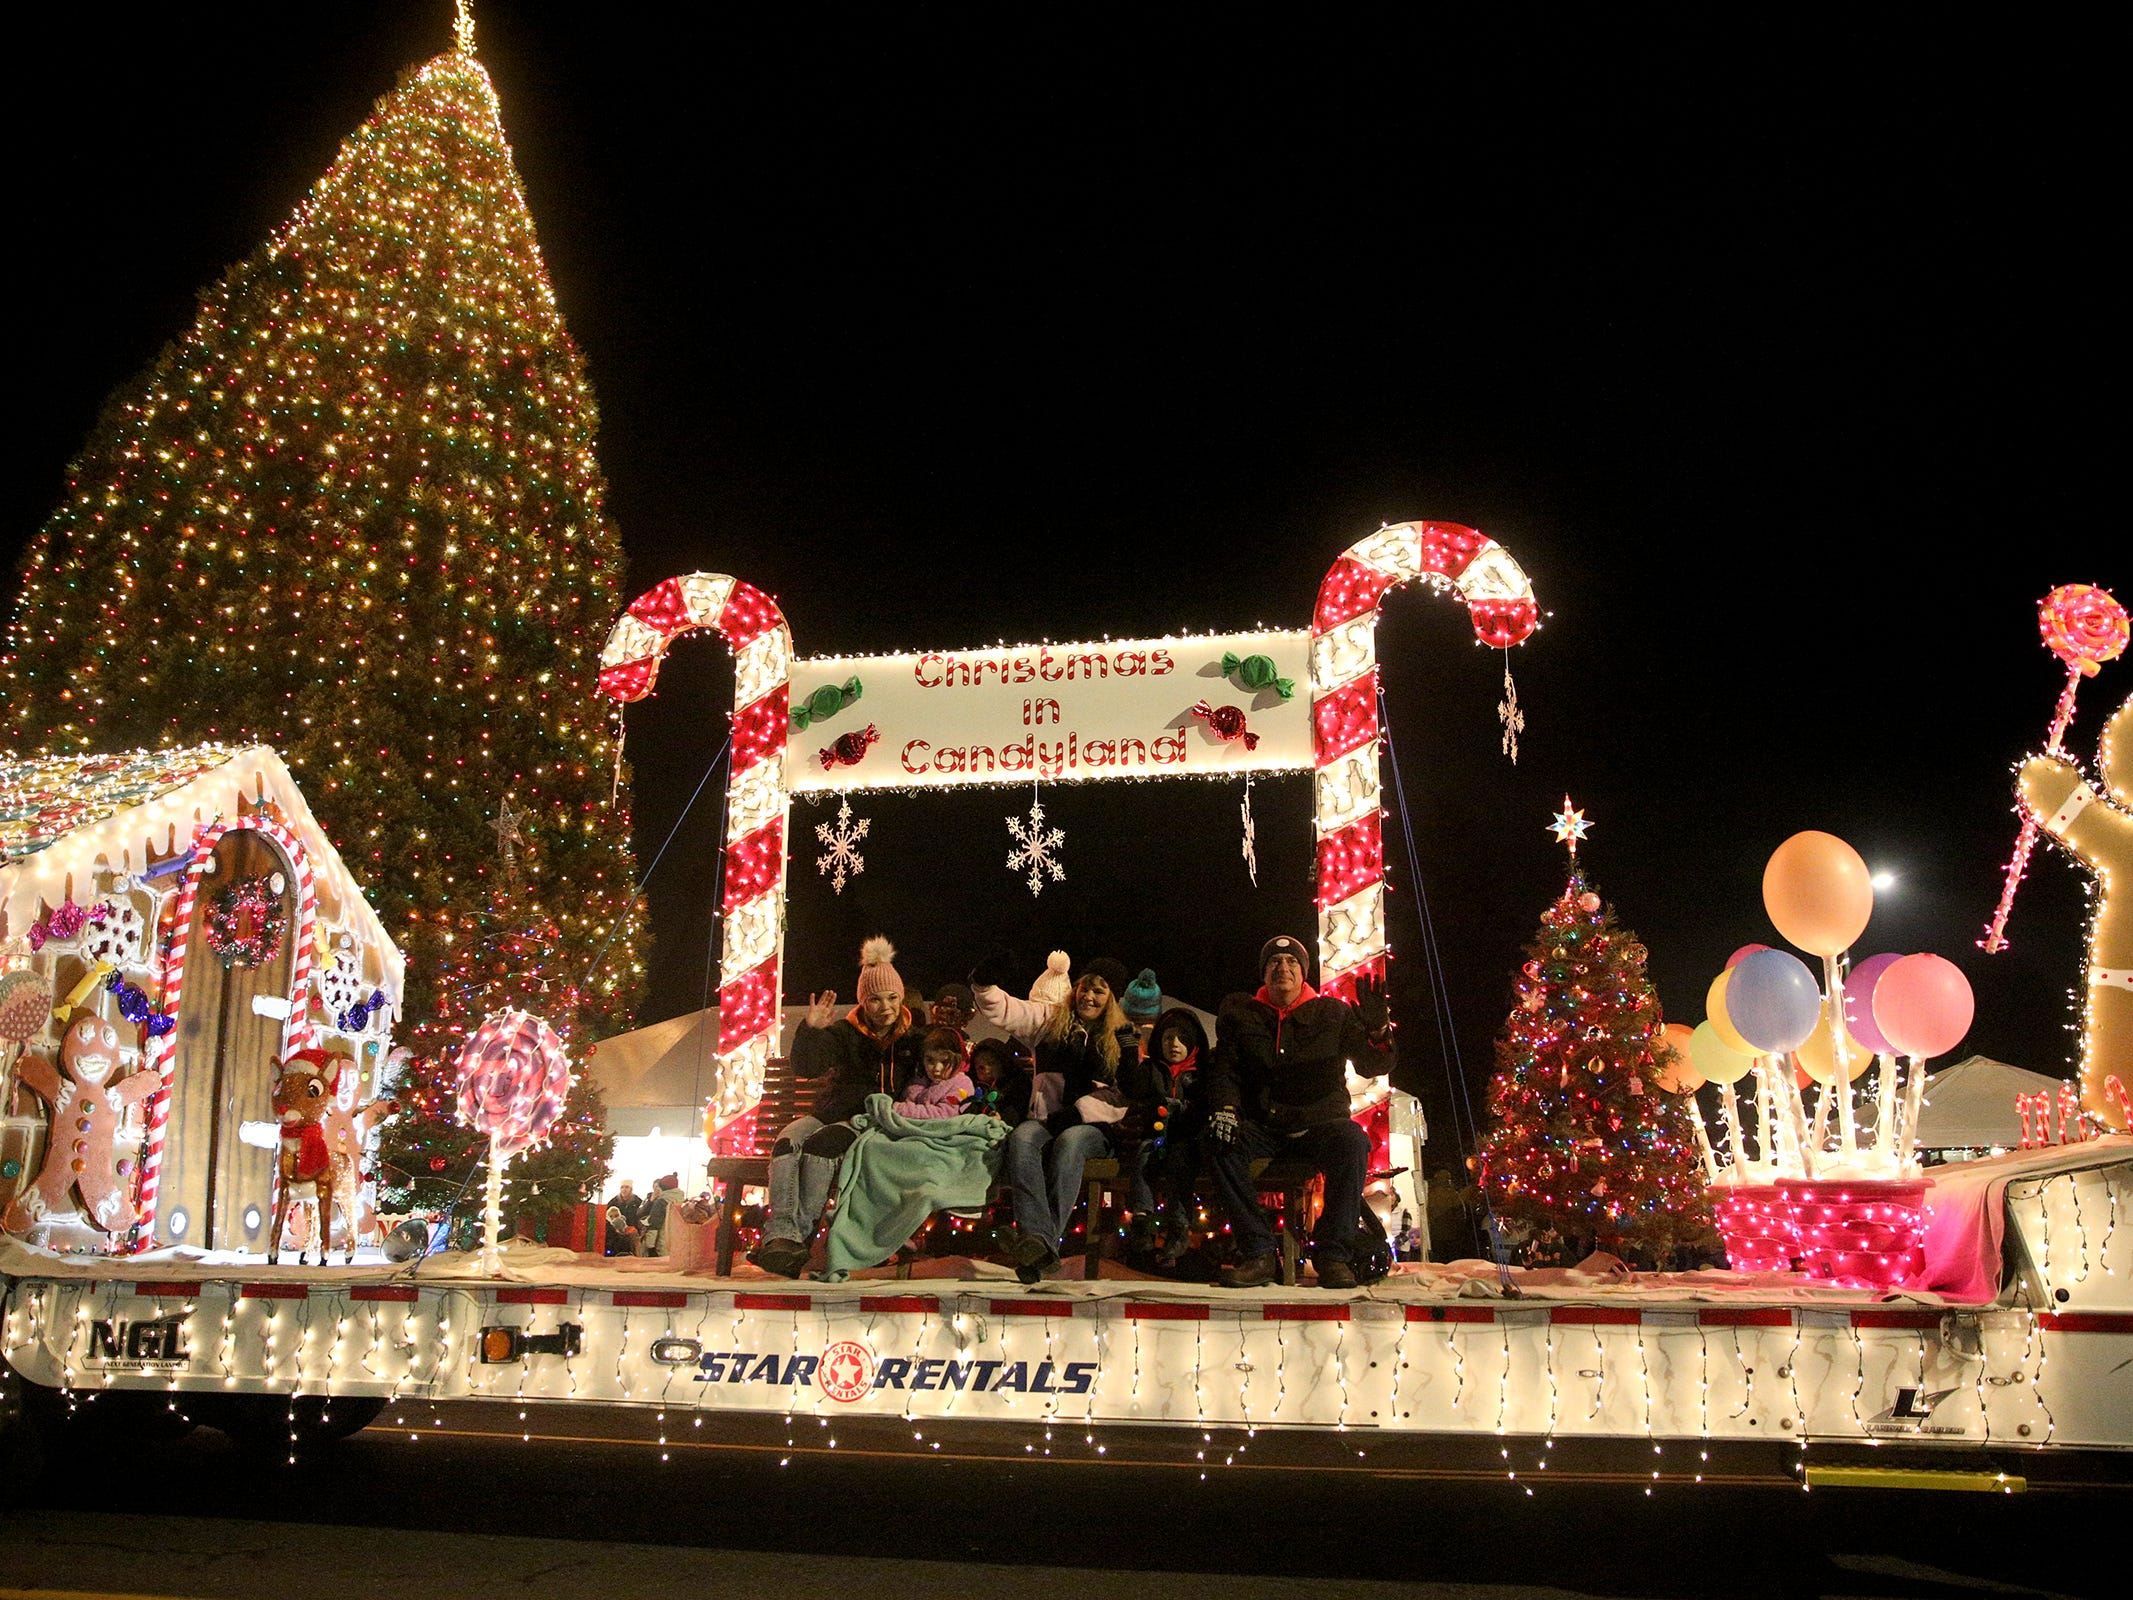 Winners of Best Theme showcase their float during the Keizer Holiday Lights Parade in Keizer on Saturday, Dec. 8, 2018. This year's theme was Christmas in Candyland.